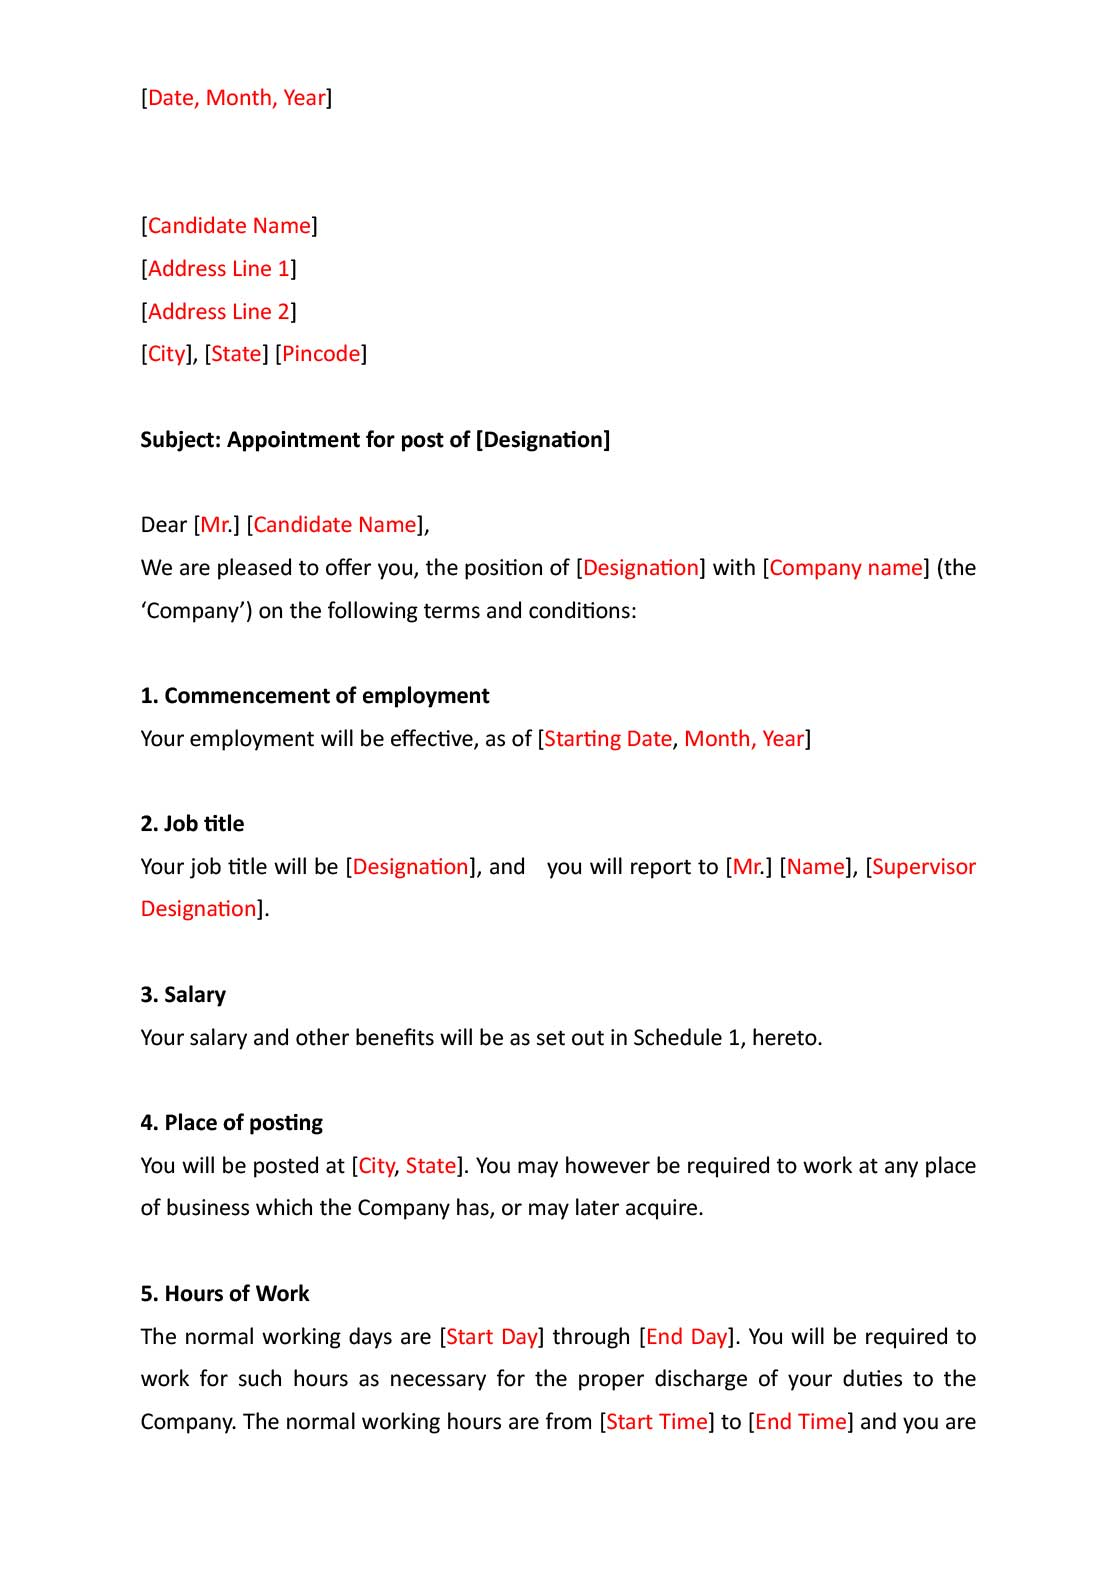 Appointment letter format indiafilings document center sample appointment letter spiritdancerdesigns Gallery